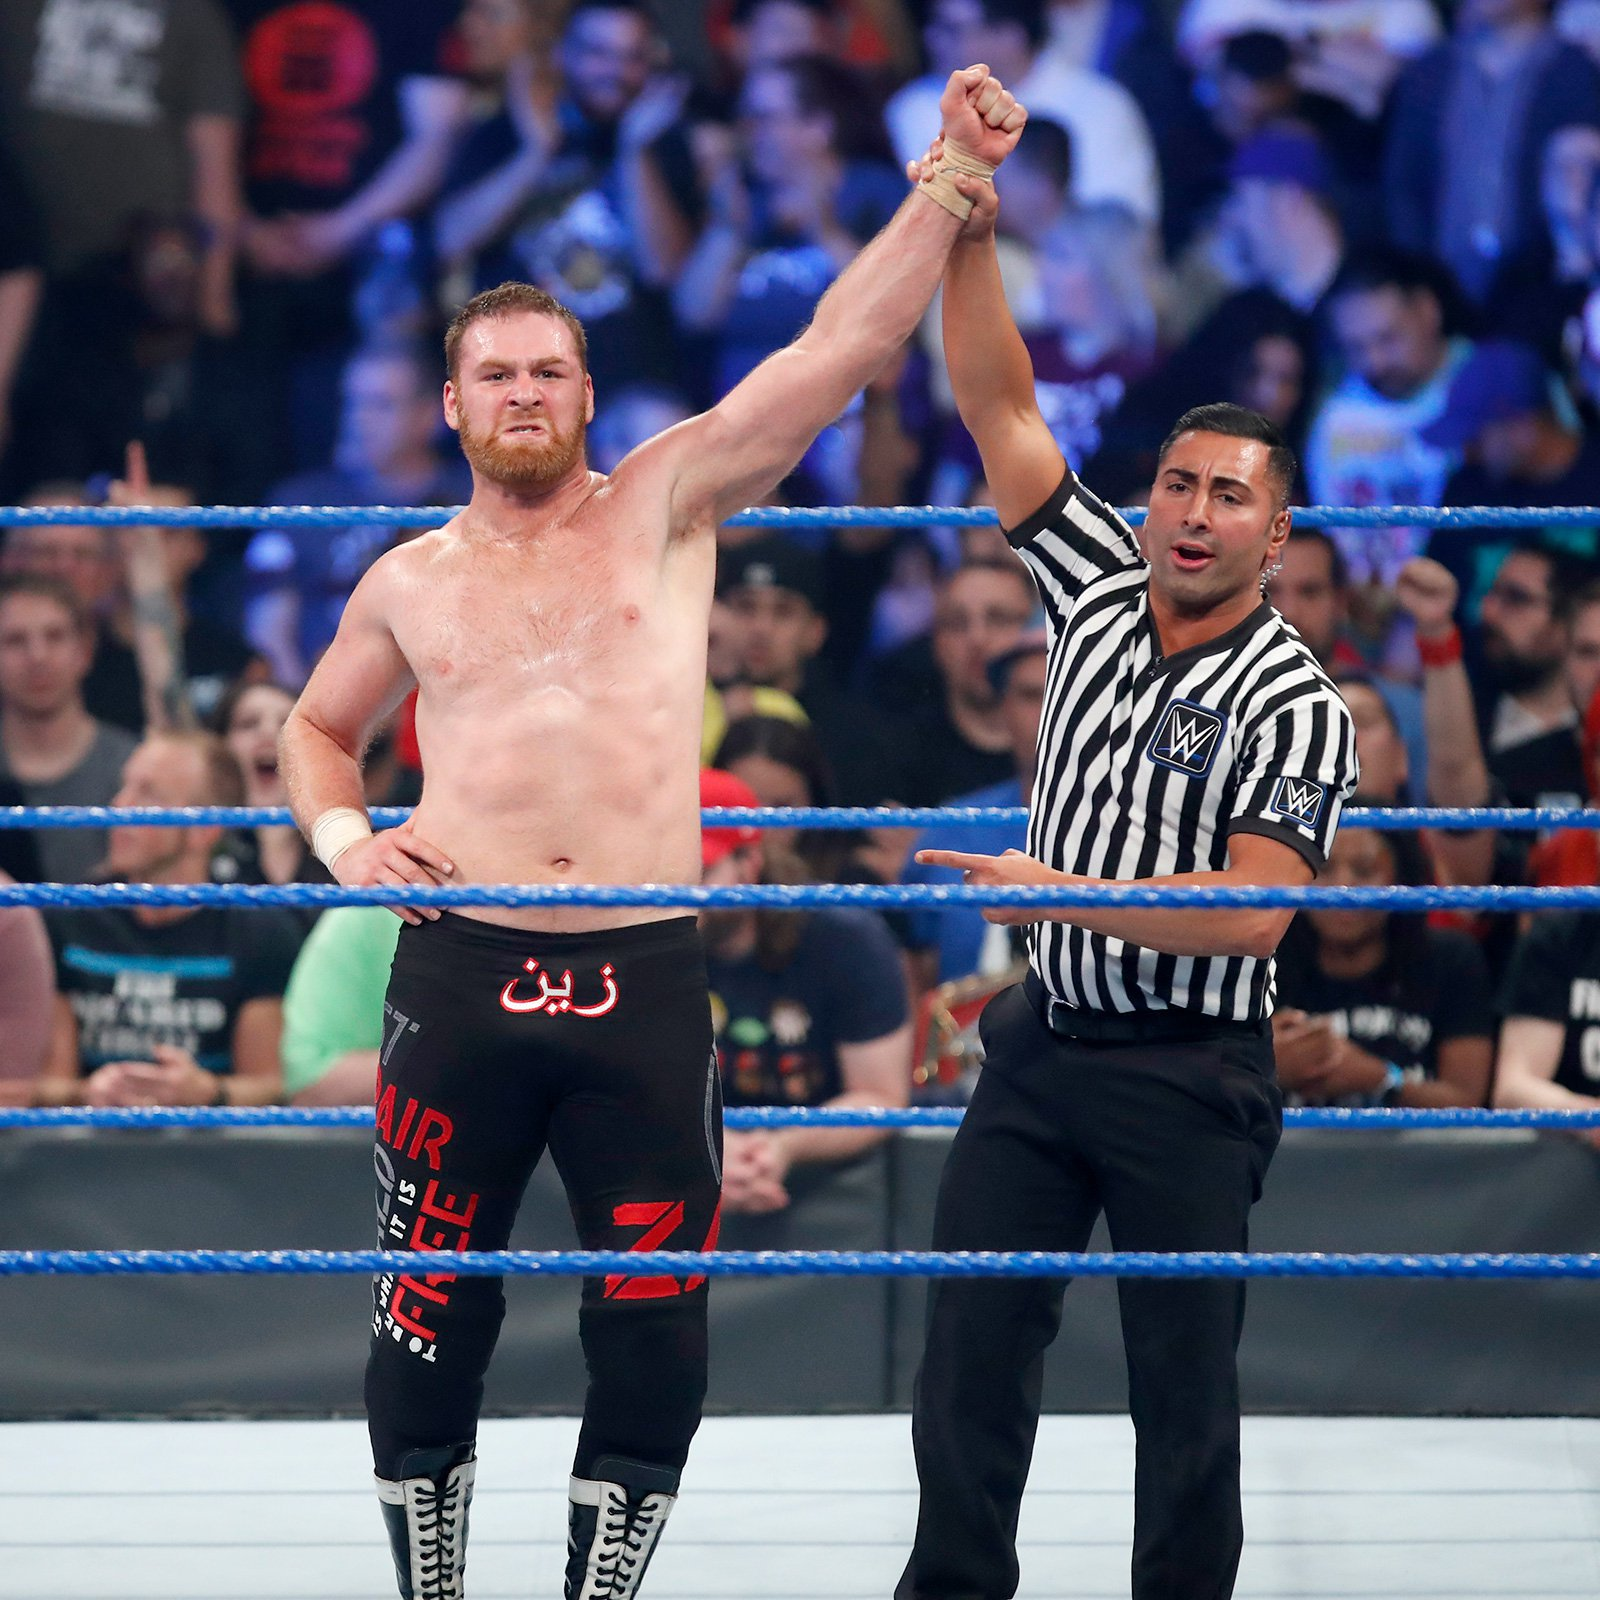 Sami Zayn comes away with an impressive victory in Chicago at WWE Backlash.